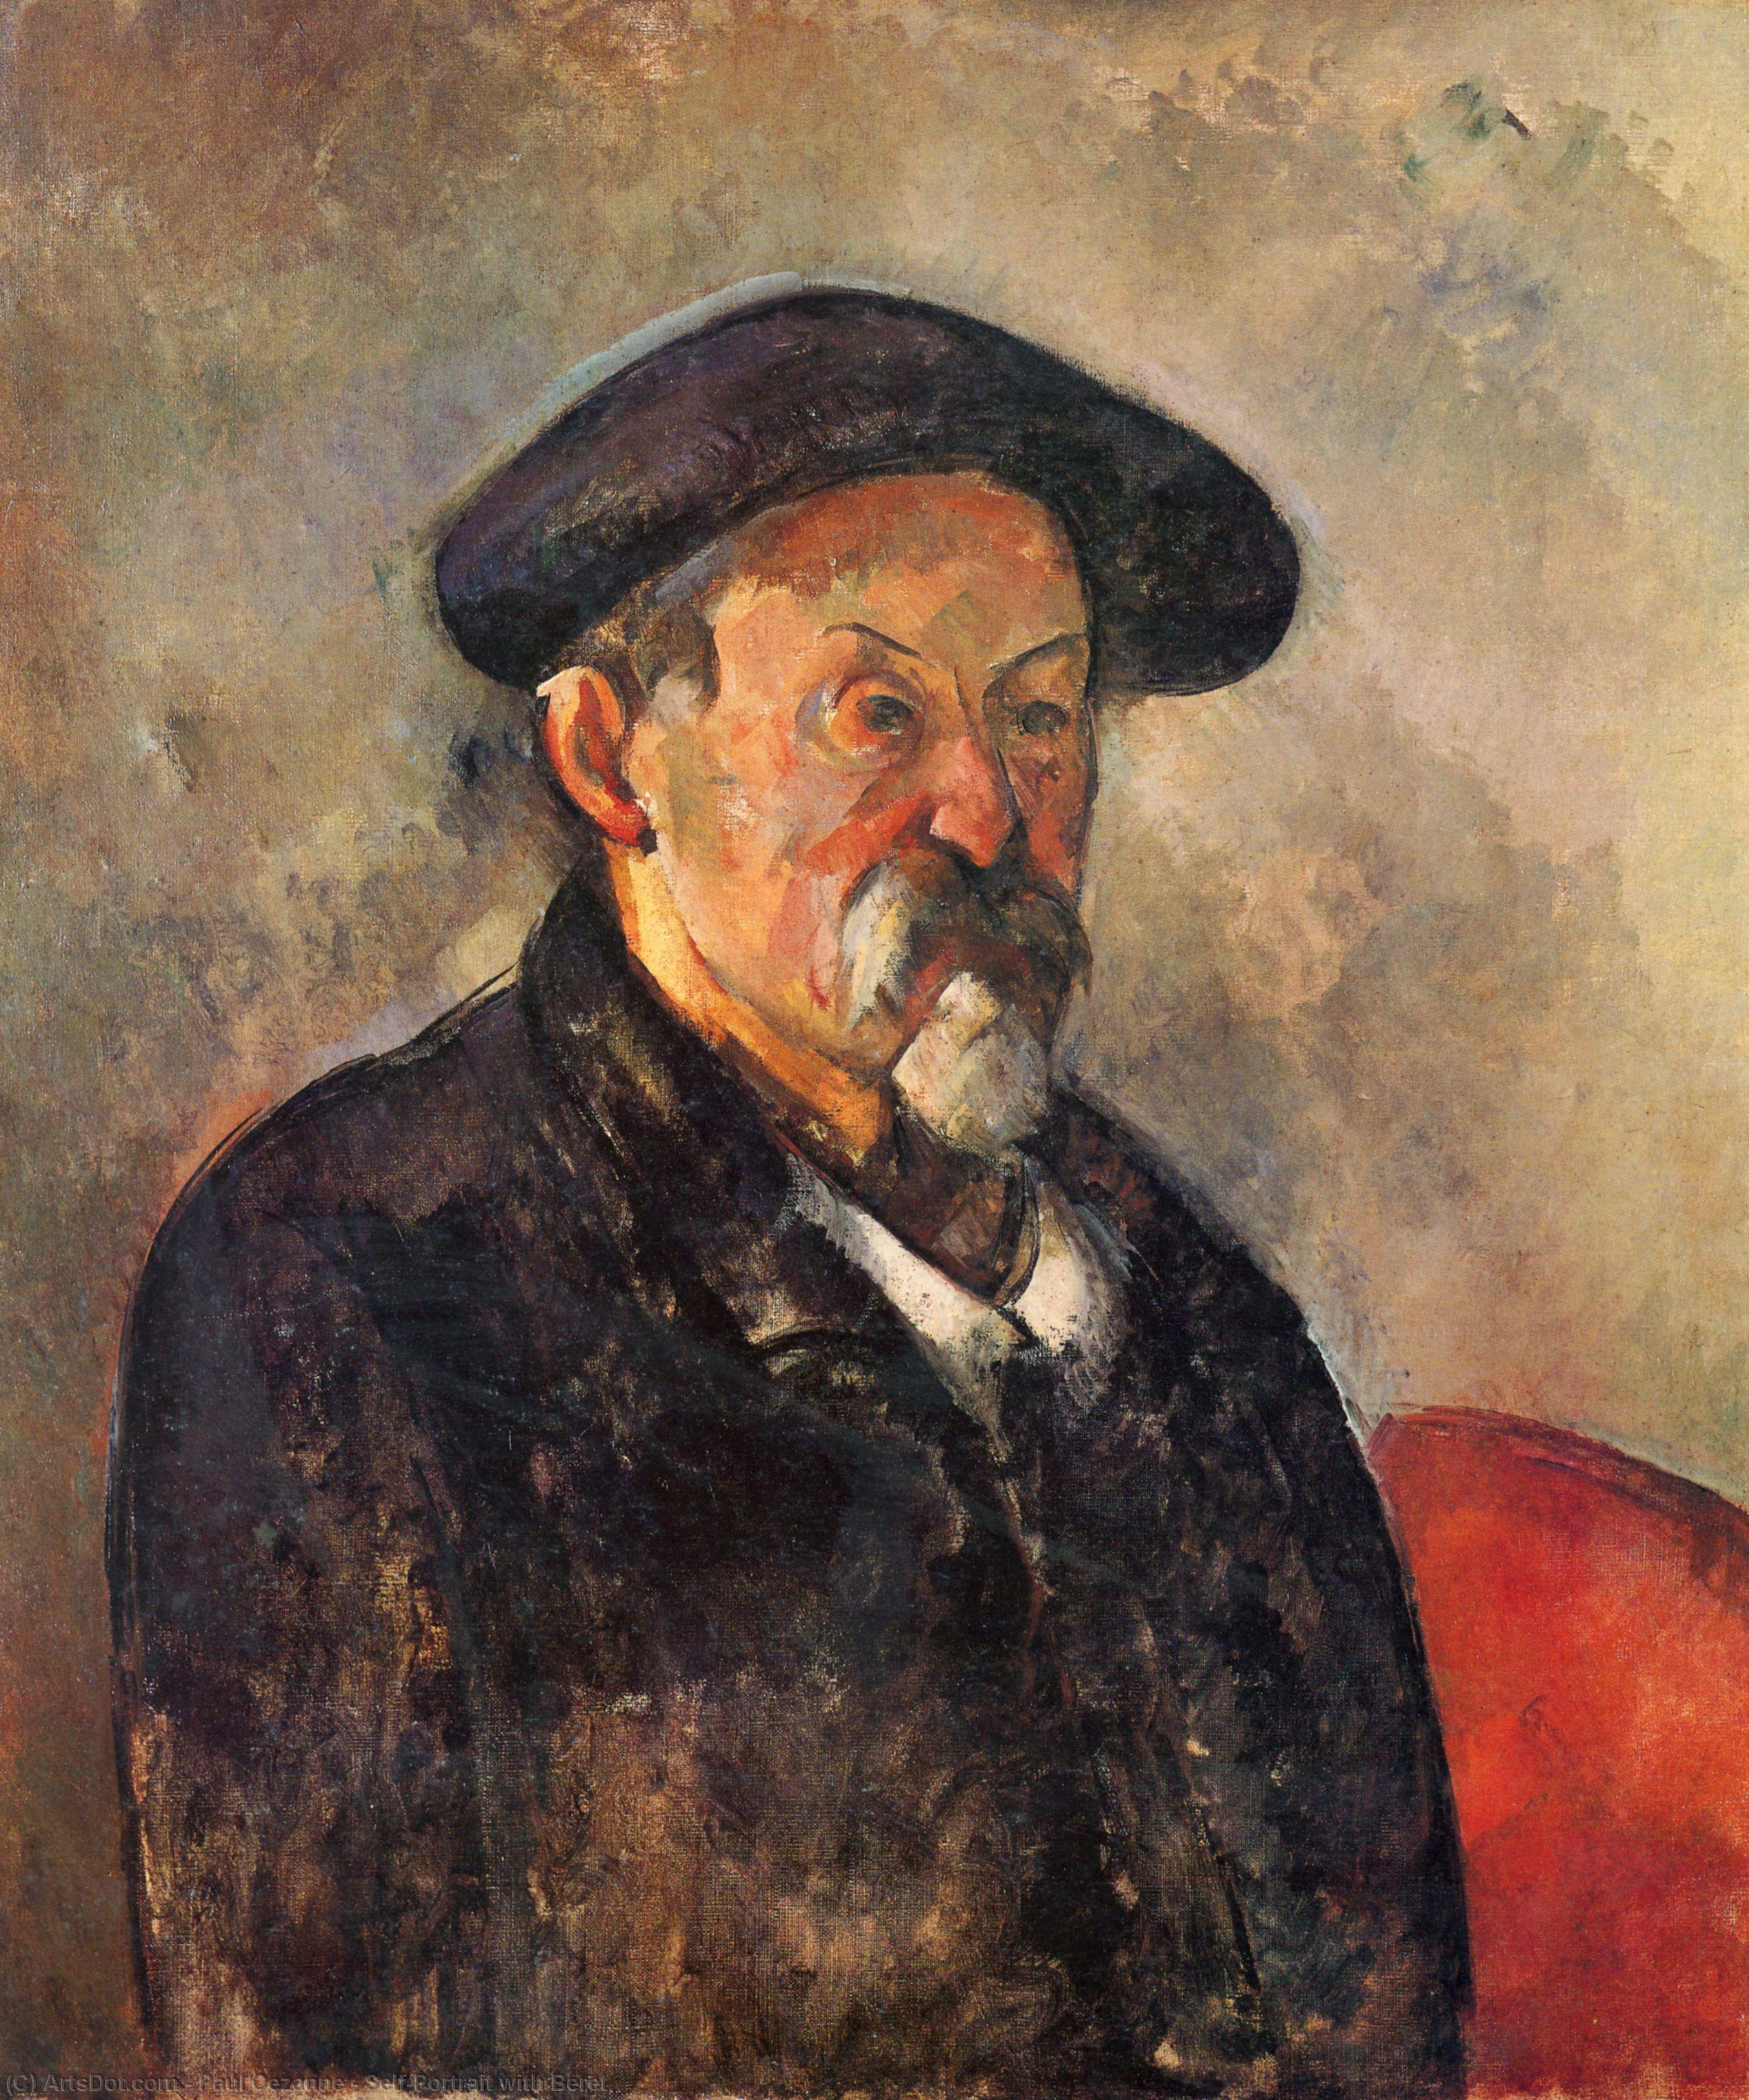 Wikioo.org - The Encyclopedia of Fine Arts - Painting, Artwork by Paul Cezanne - Self-Portrait with Beret